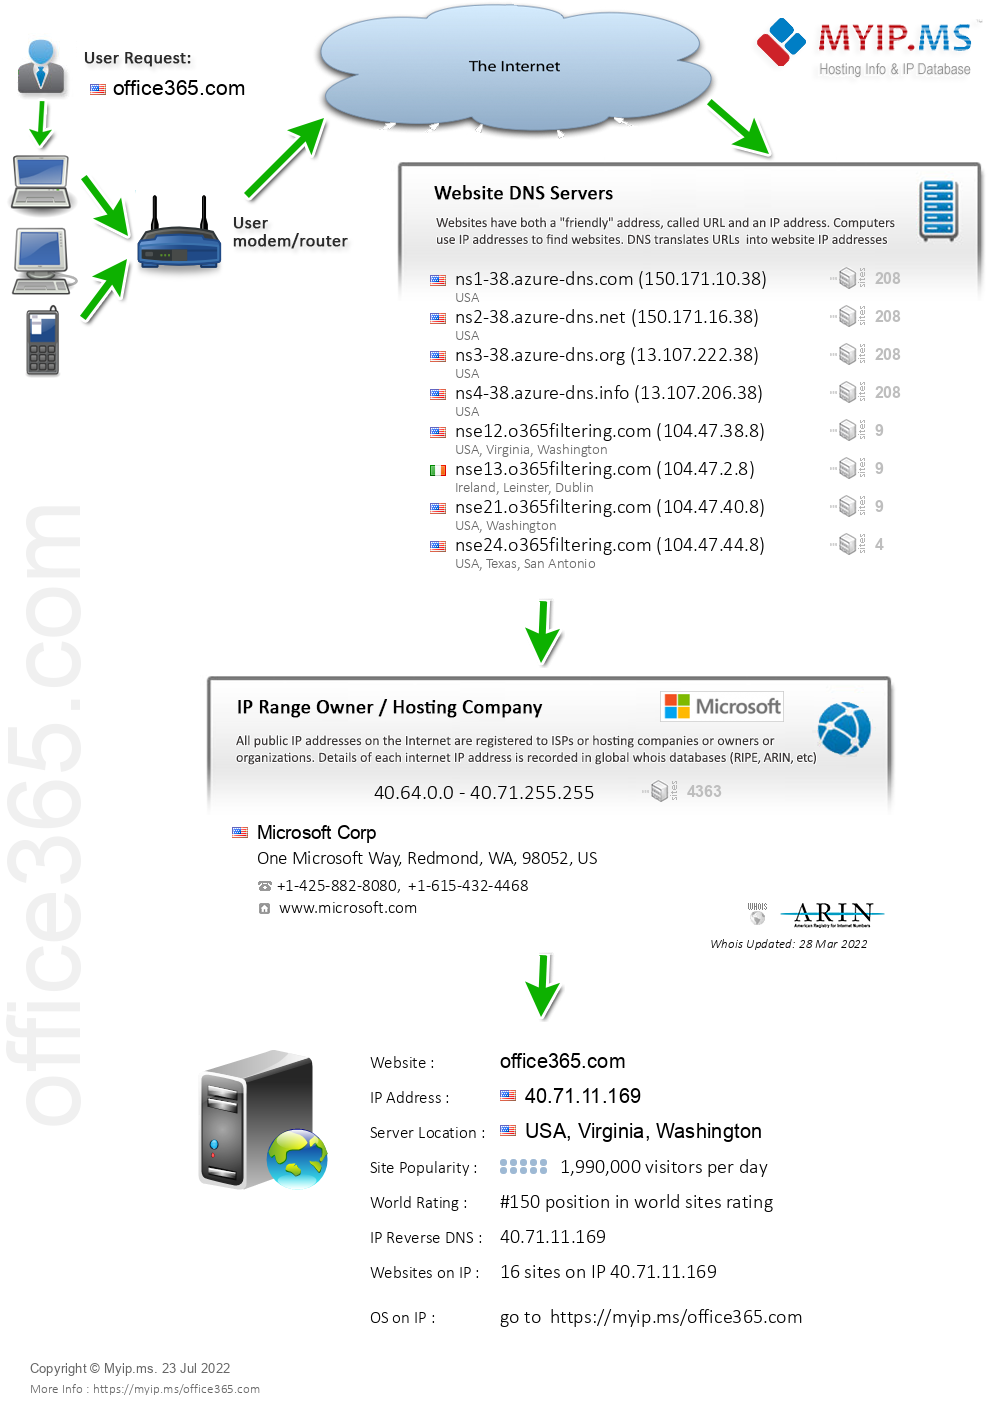 Office365.com - Website Hosting Visual IP Diagram